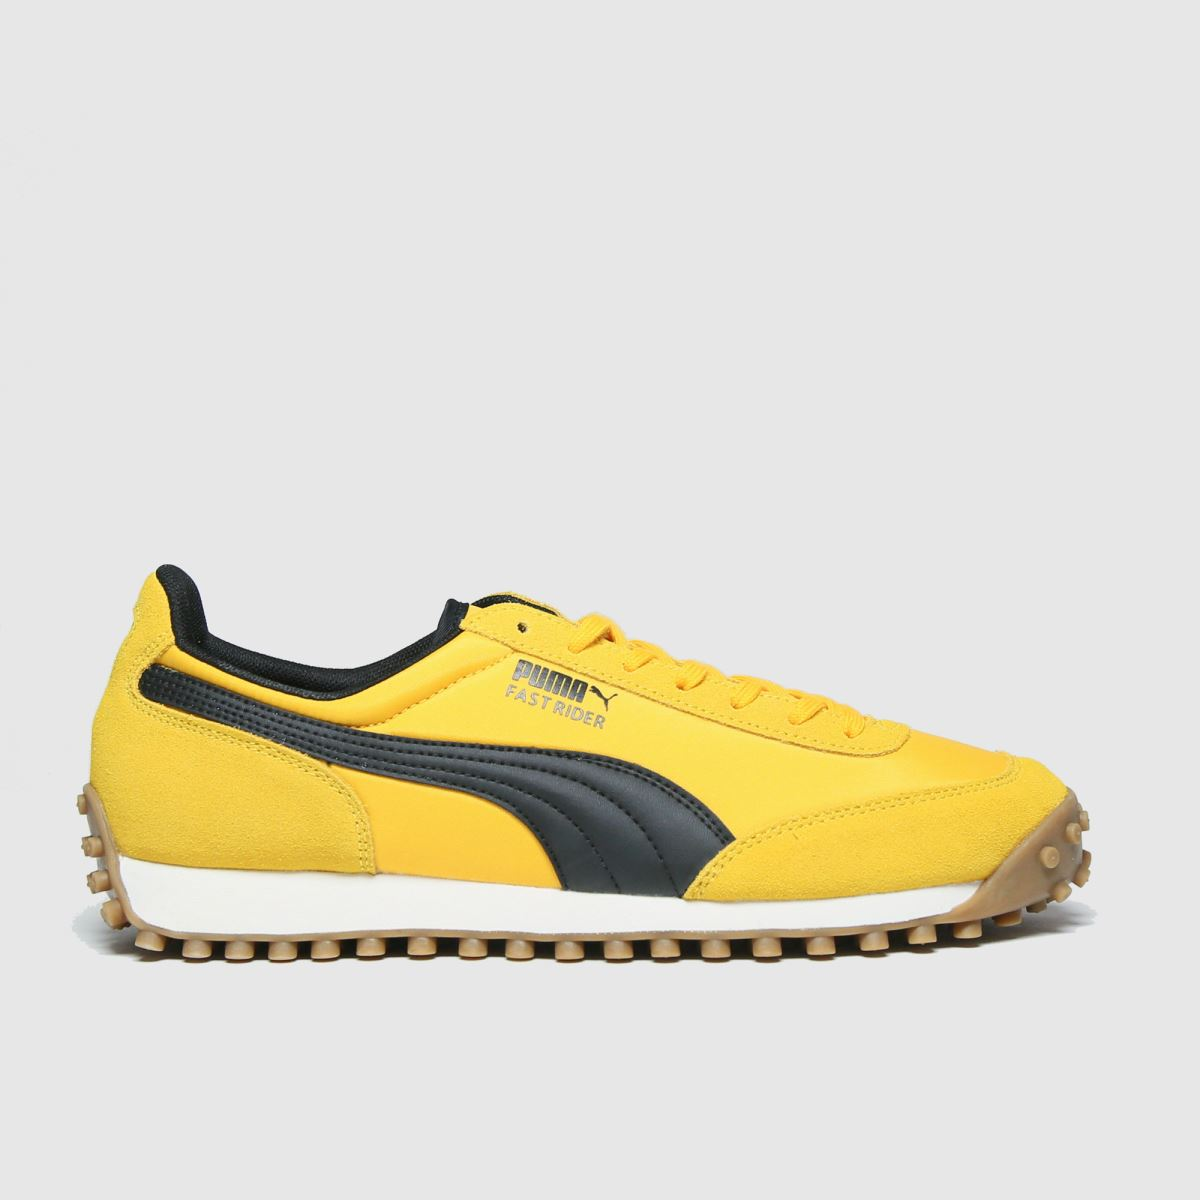 Puma Yellow Fast Rider Source Trainers